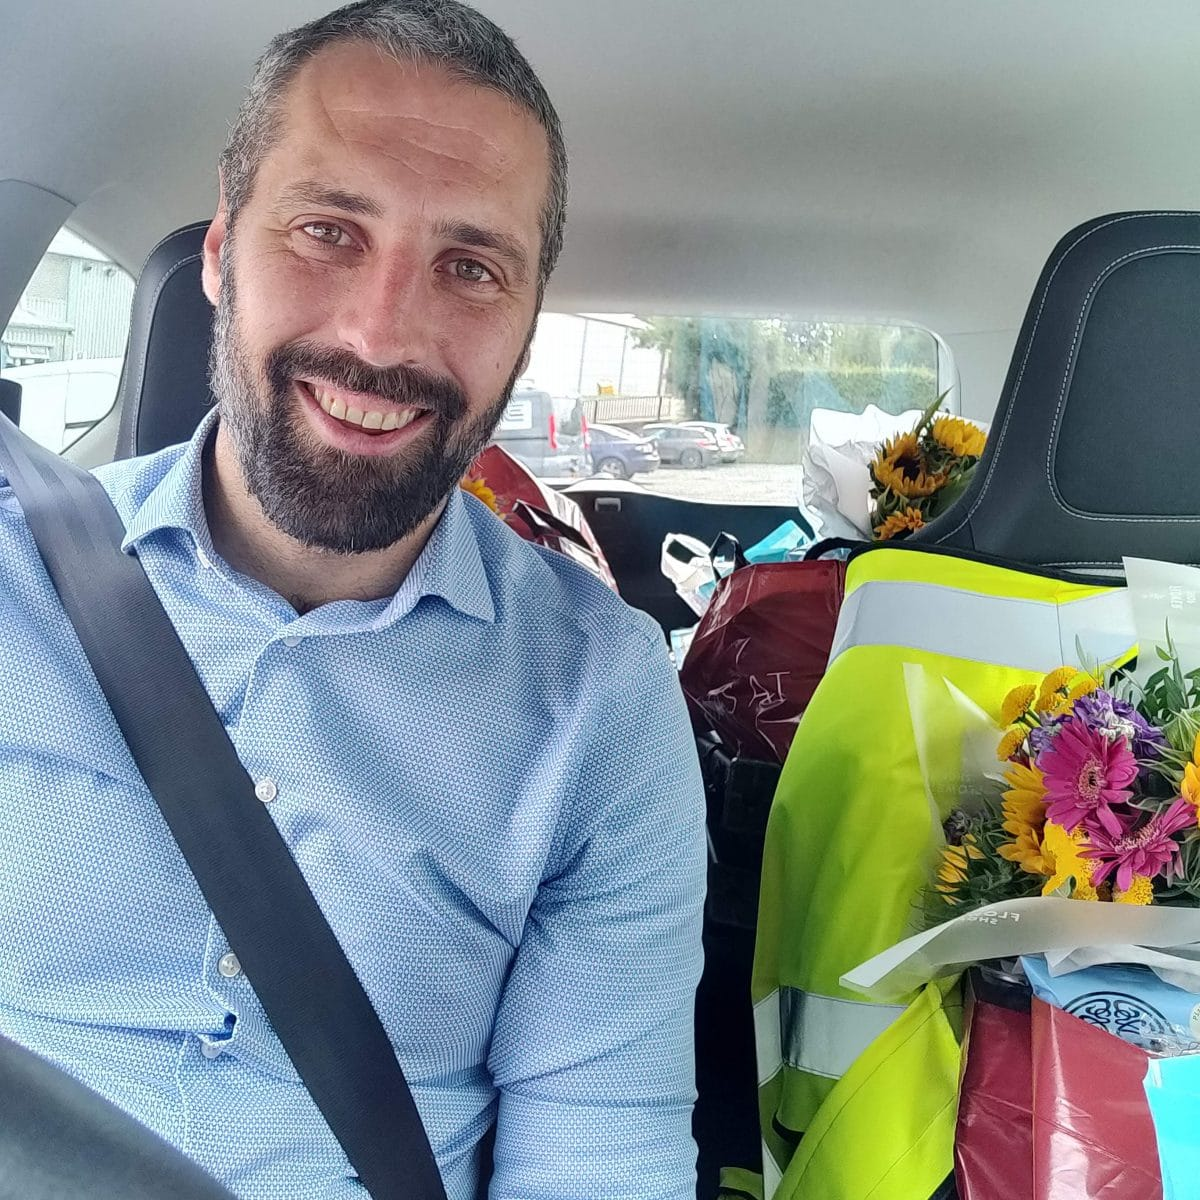 Parked at the Isle of Man Foodbank, ready to deliver another car load of food (and flowers!)